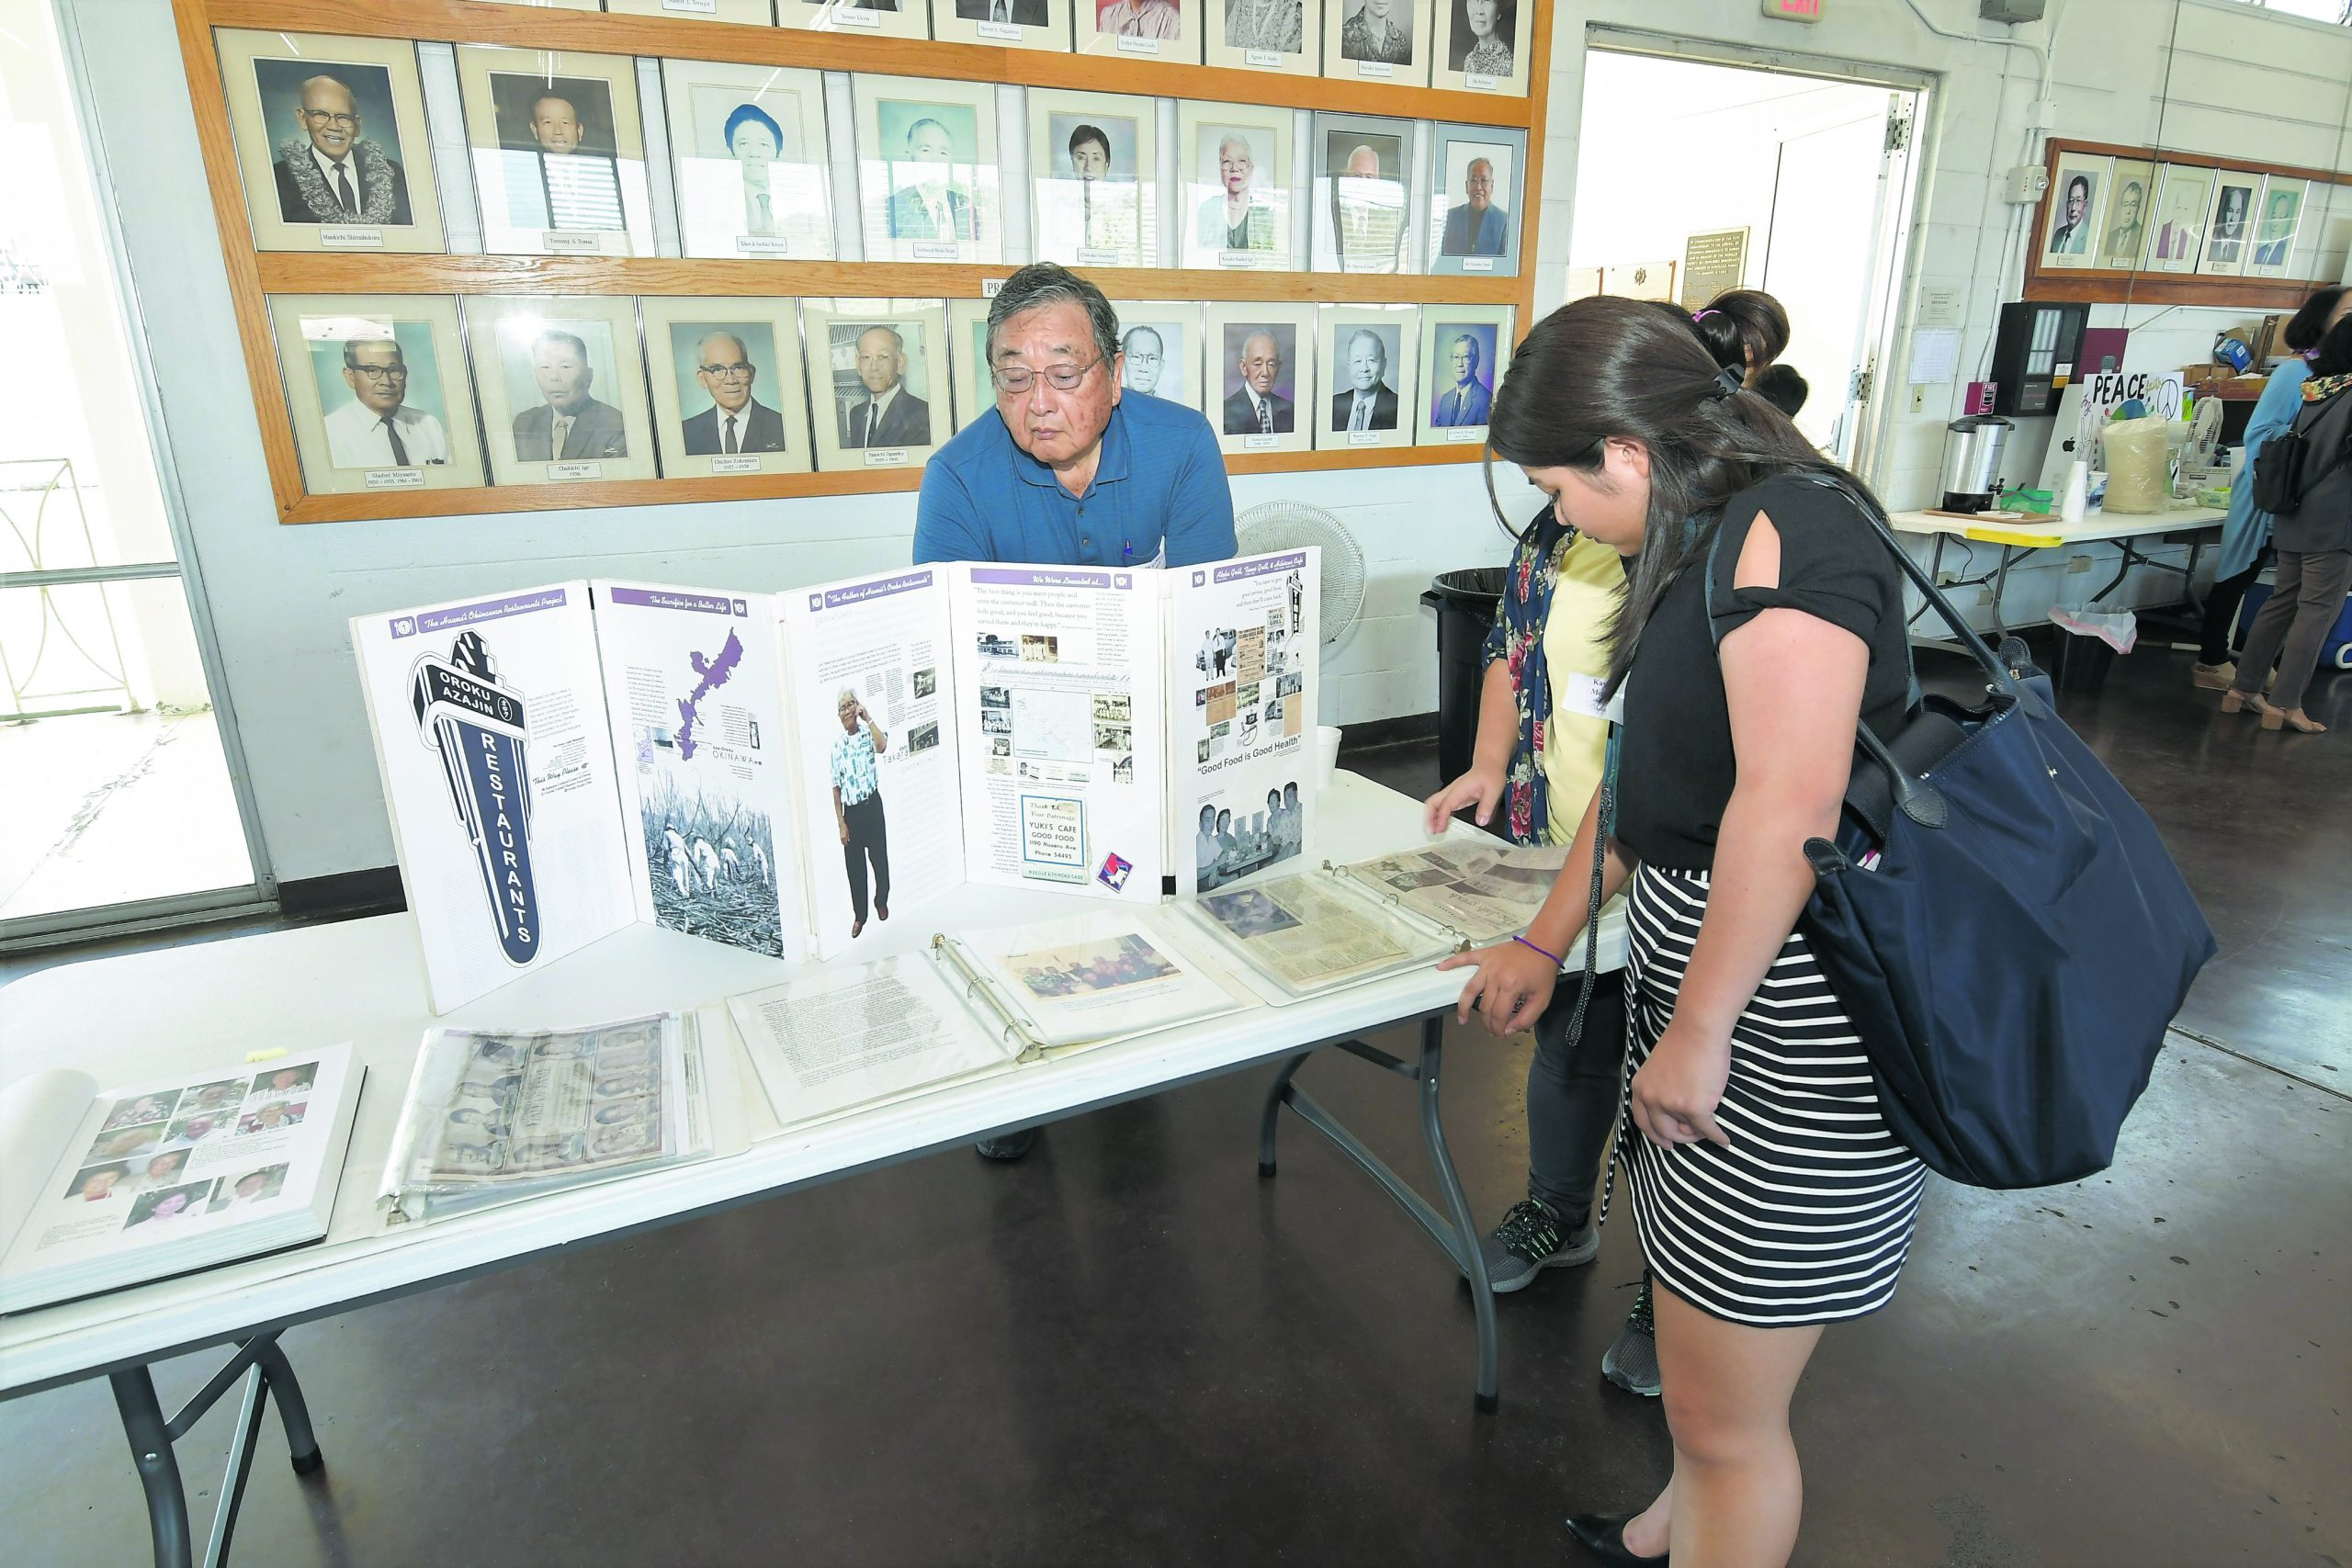 Wayne Toma and Marcie Moribe browse the Okinawan Restaurants Project tabletop display. Moribe's grandparents, the late Seizen and Fusae Hanashiro, both worked at — and retired from — KC Drive Inn. On the wall behind Toma are photographs of Jikoen's past presidents.